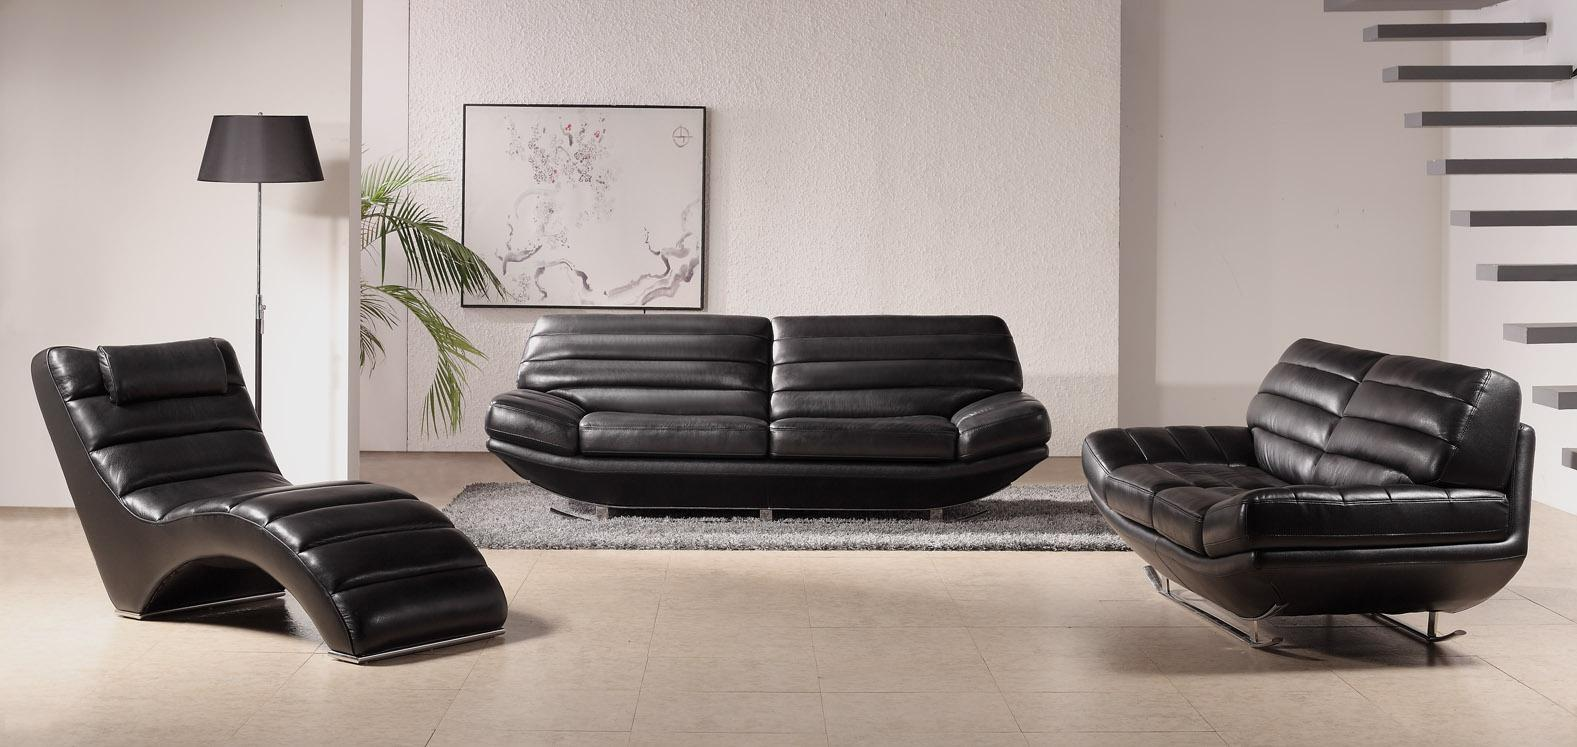 Know about types of couches and sofas my decorative for Designer living room sets